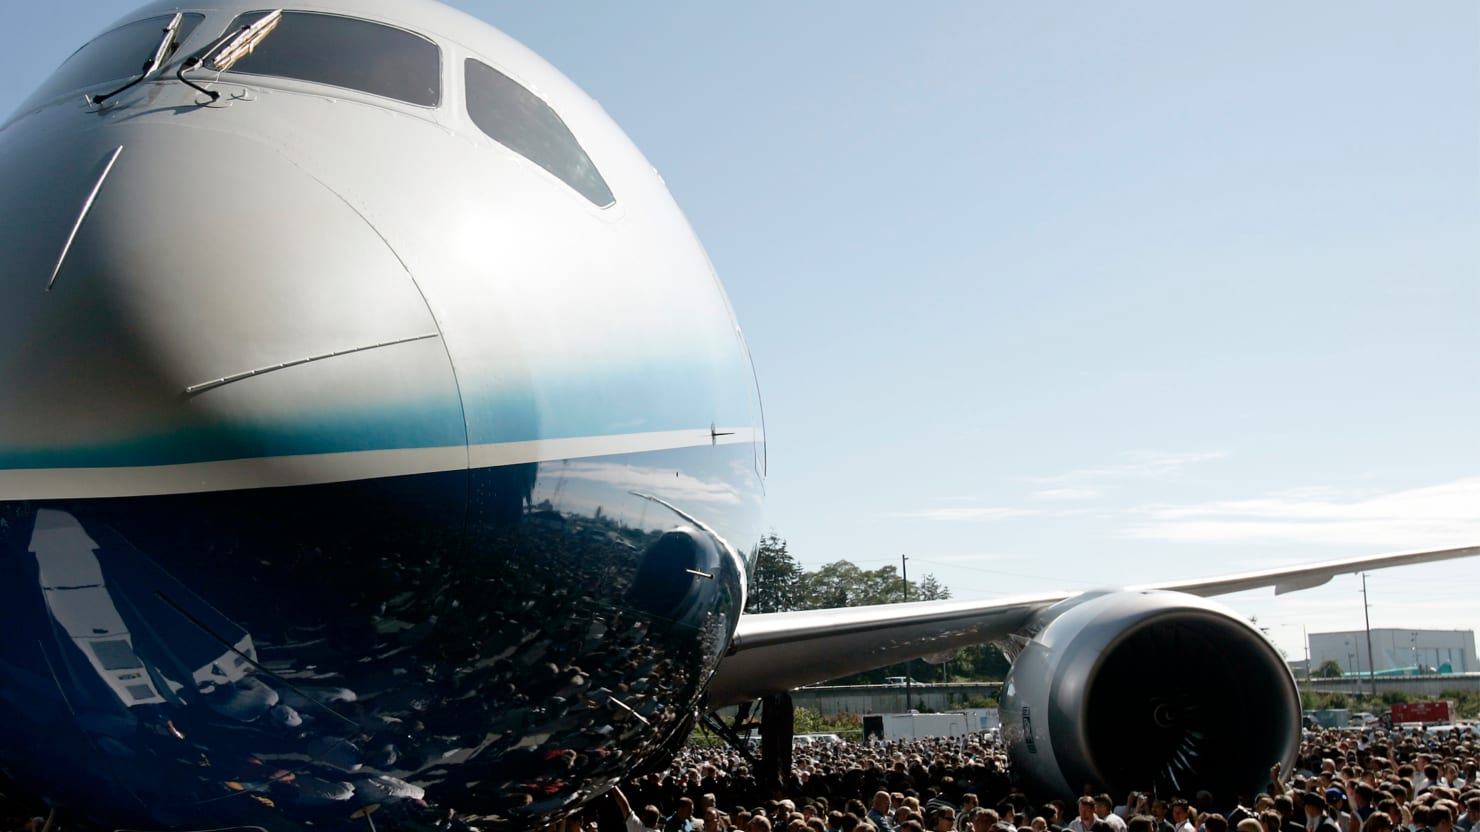 Boeing's Dreamliner Factory in North Carolina Hit With Complaints of Bad Safety Practices